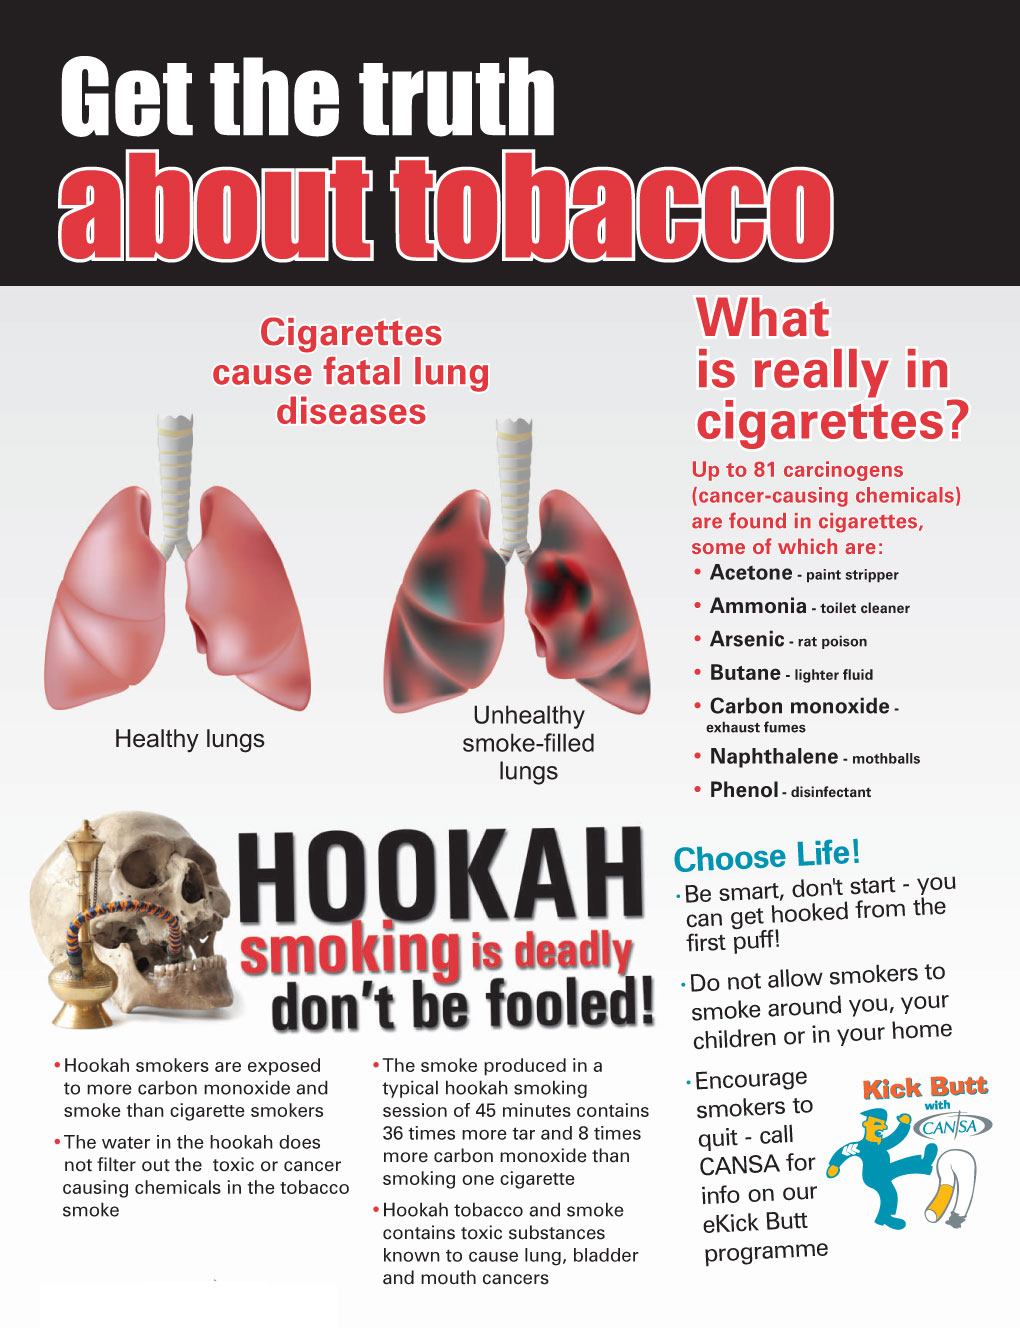 Get the truth about tobacco